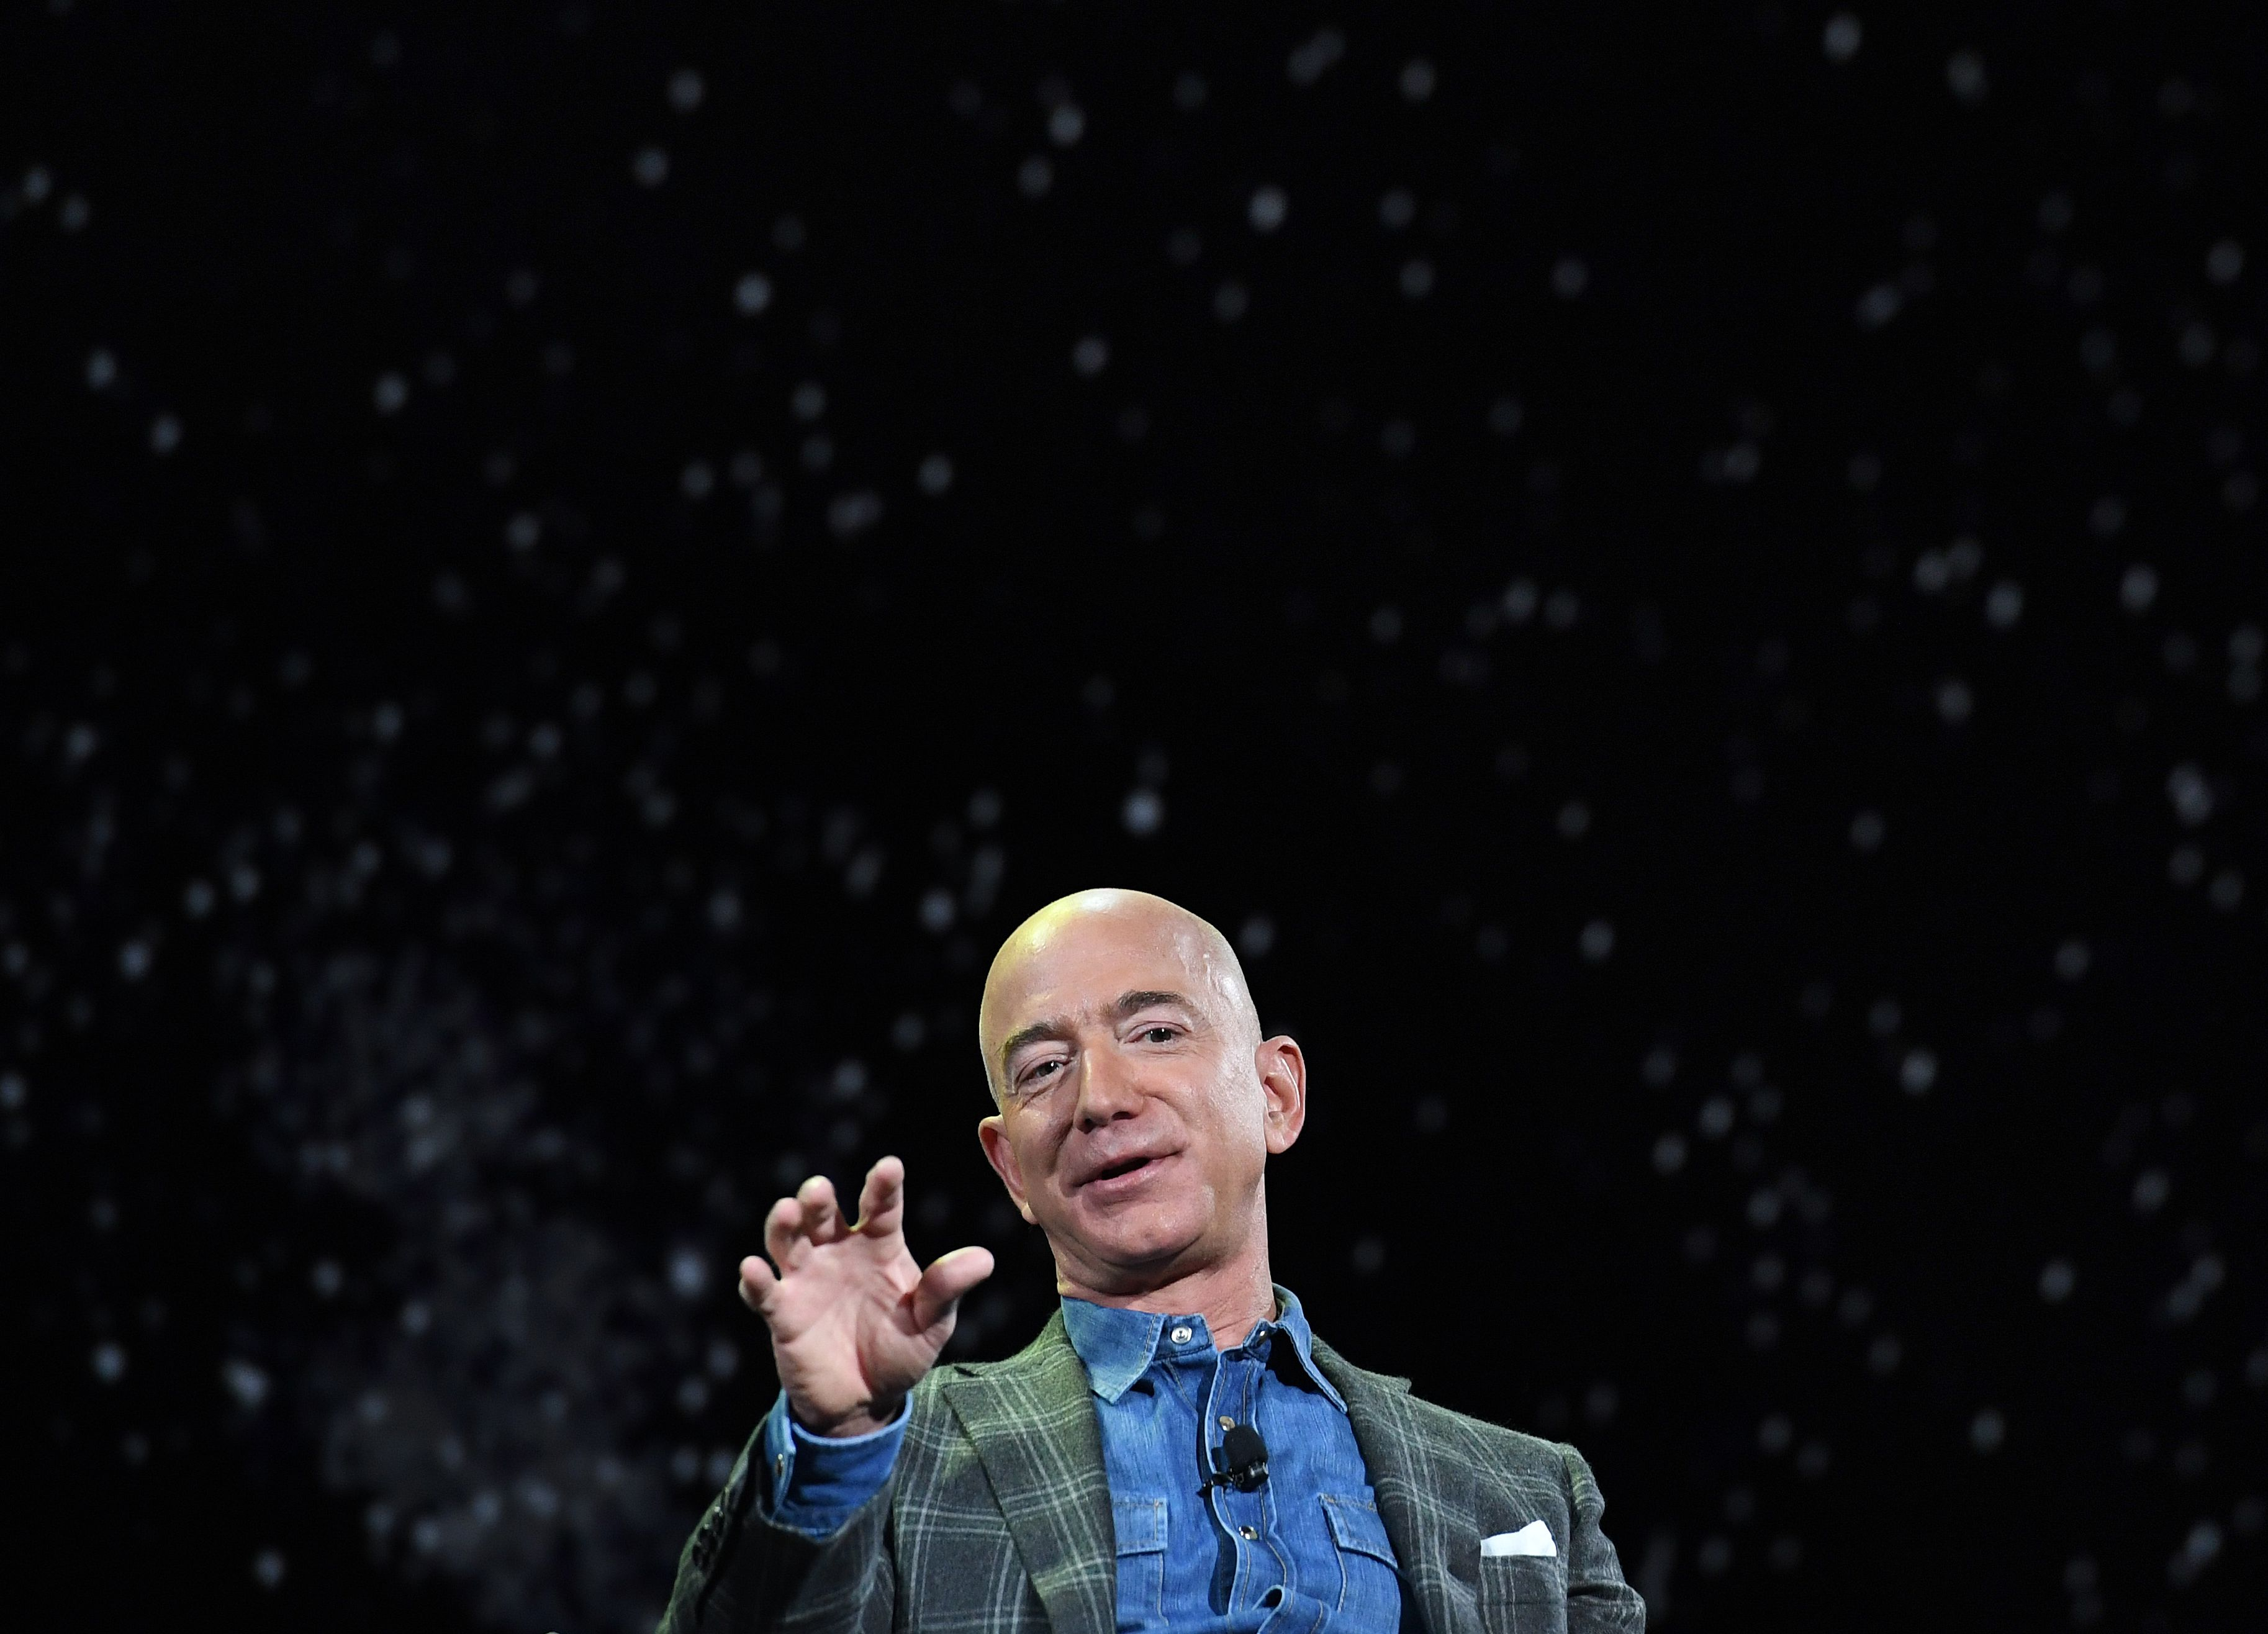 Jeff Bezos tops Forbes list of billionaires, again